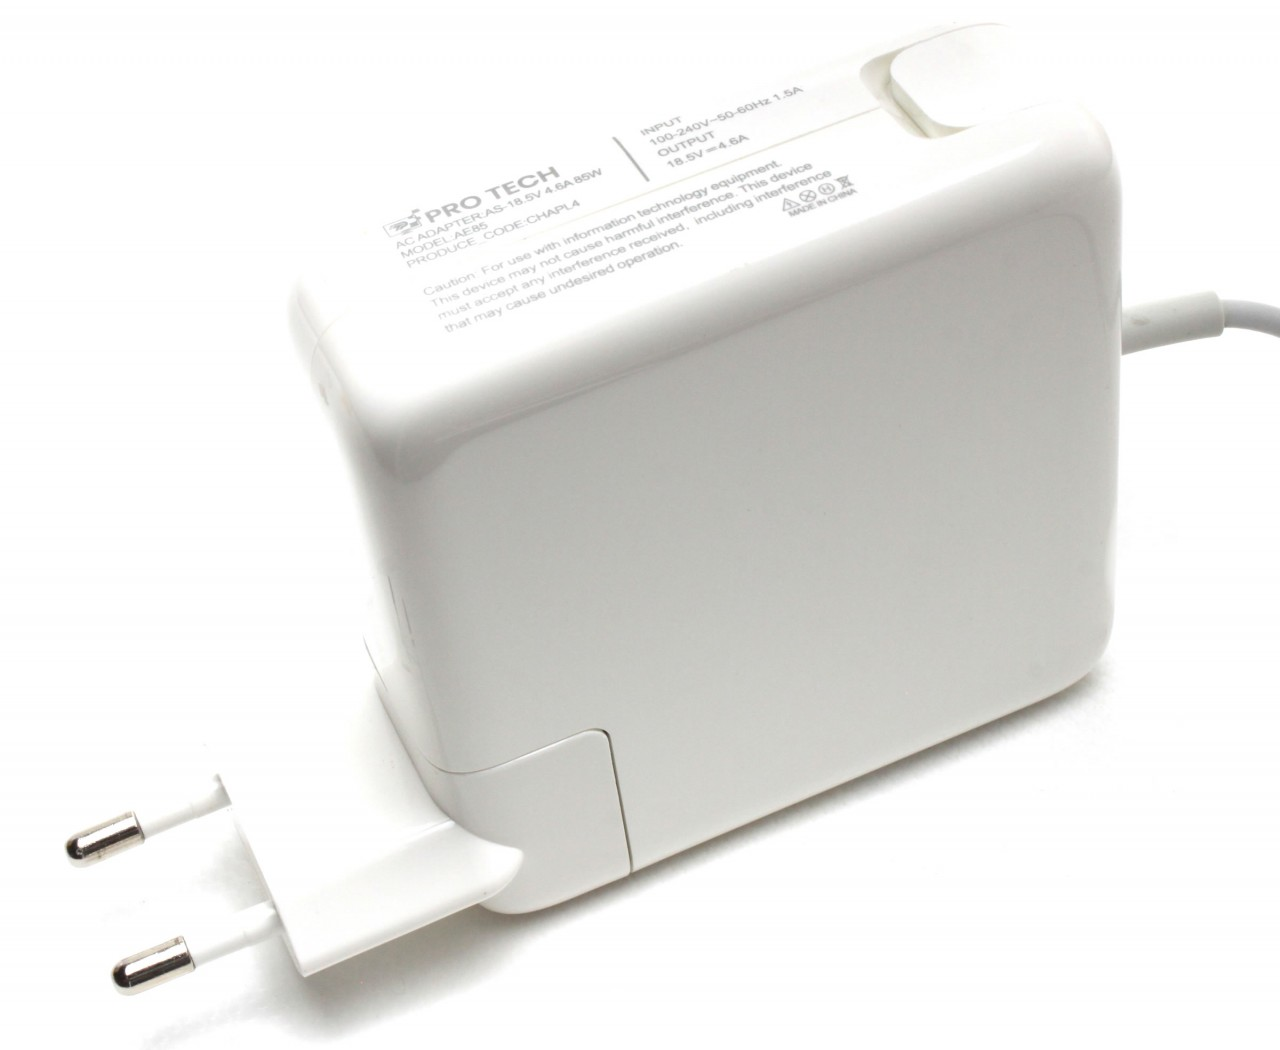 Incarcator Apple A1343 85W Replacement imagine